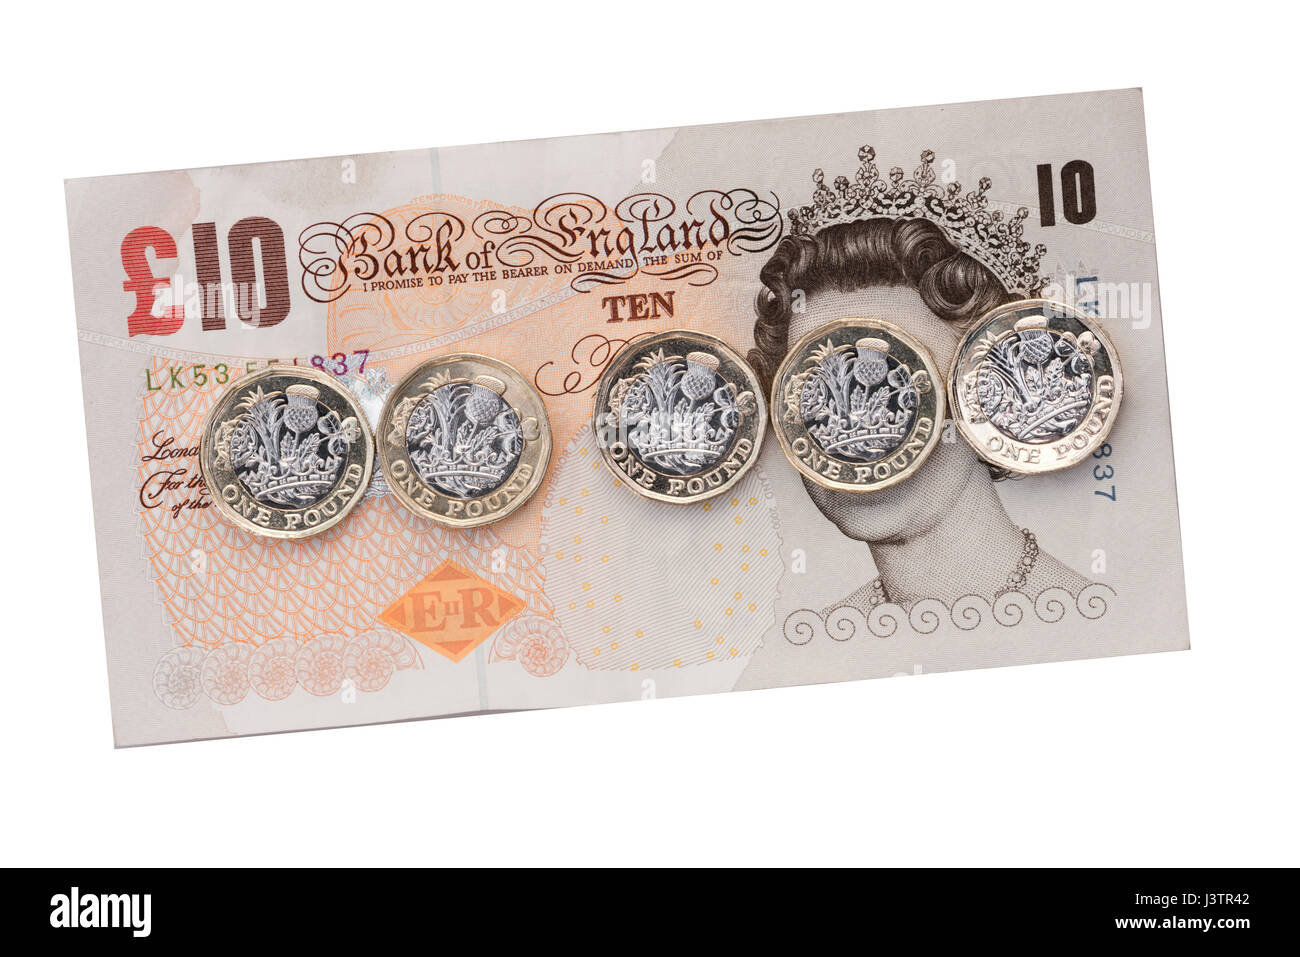 New pound coins across a £10 pound note, UK. - Stock Image